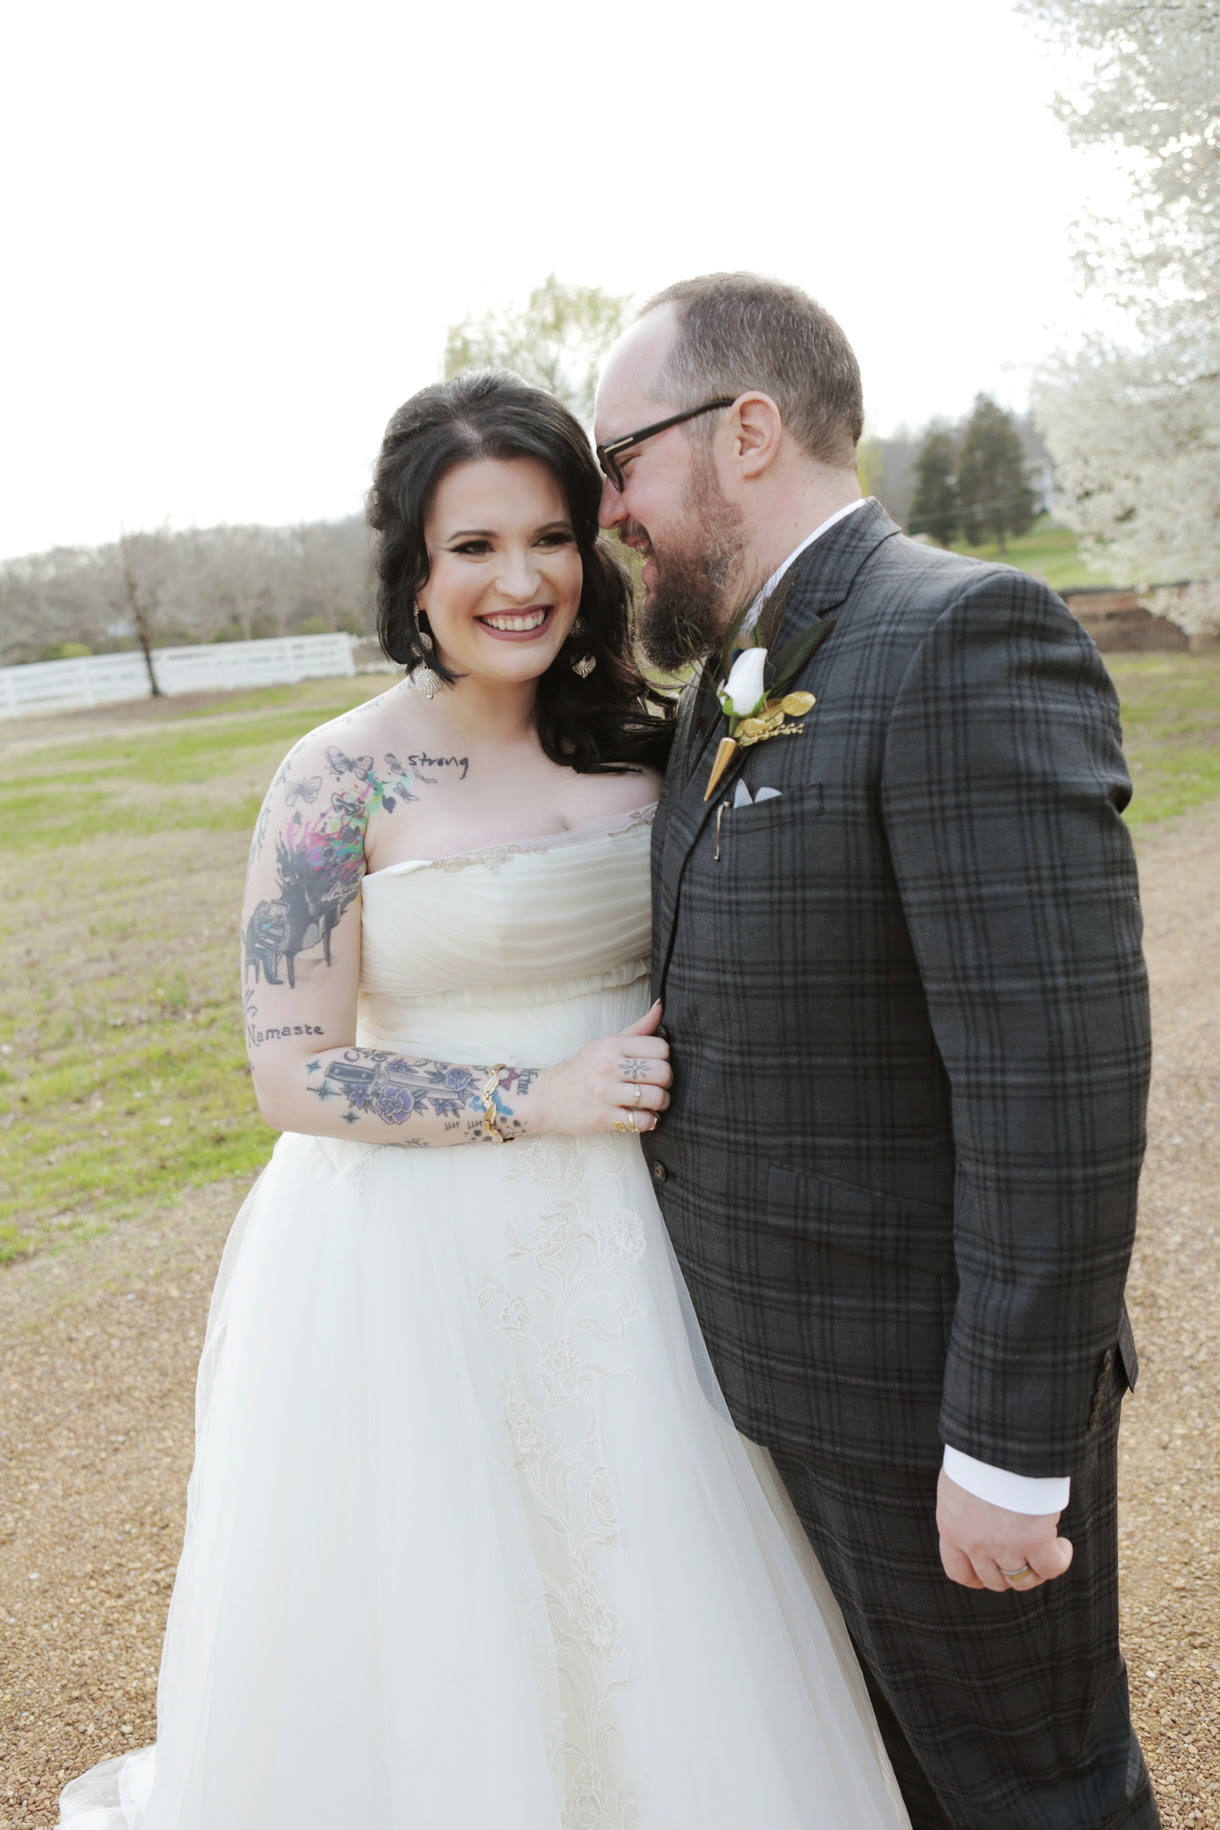 StowTown Records Announces the Marriage of Destiny Rambo McGuire